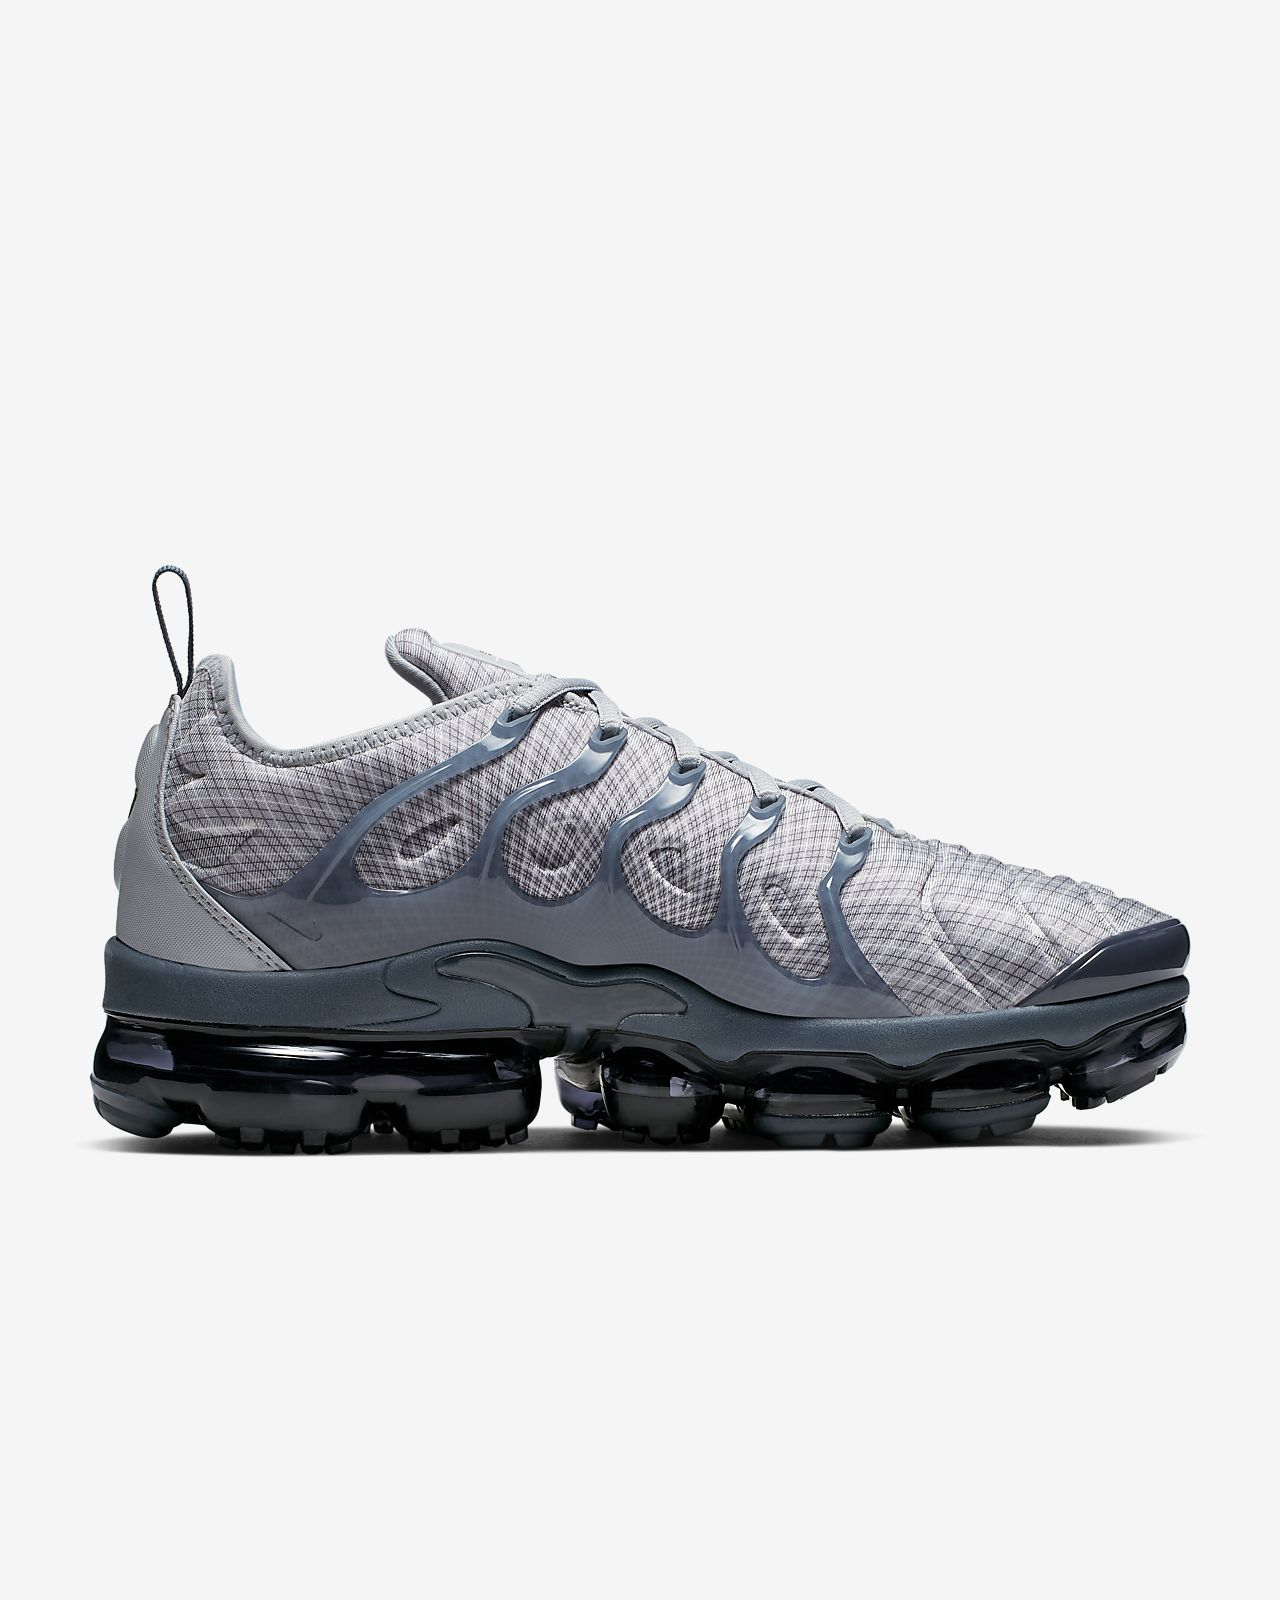 NIKE AIR MAX Plus 97 Requin Sarcelle Blanc N.45 Prix